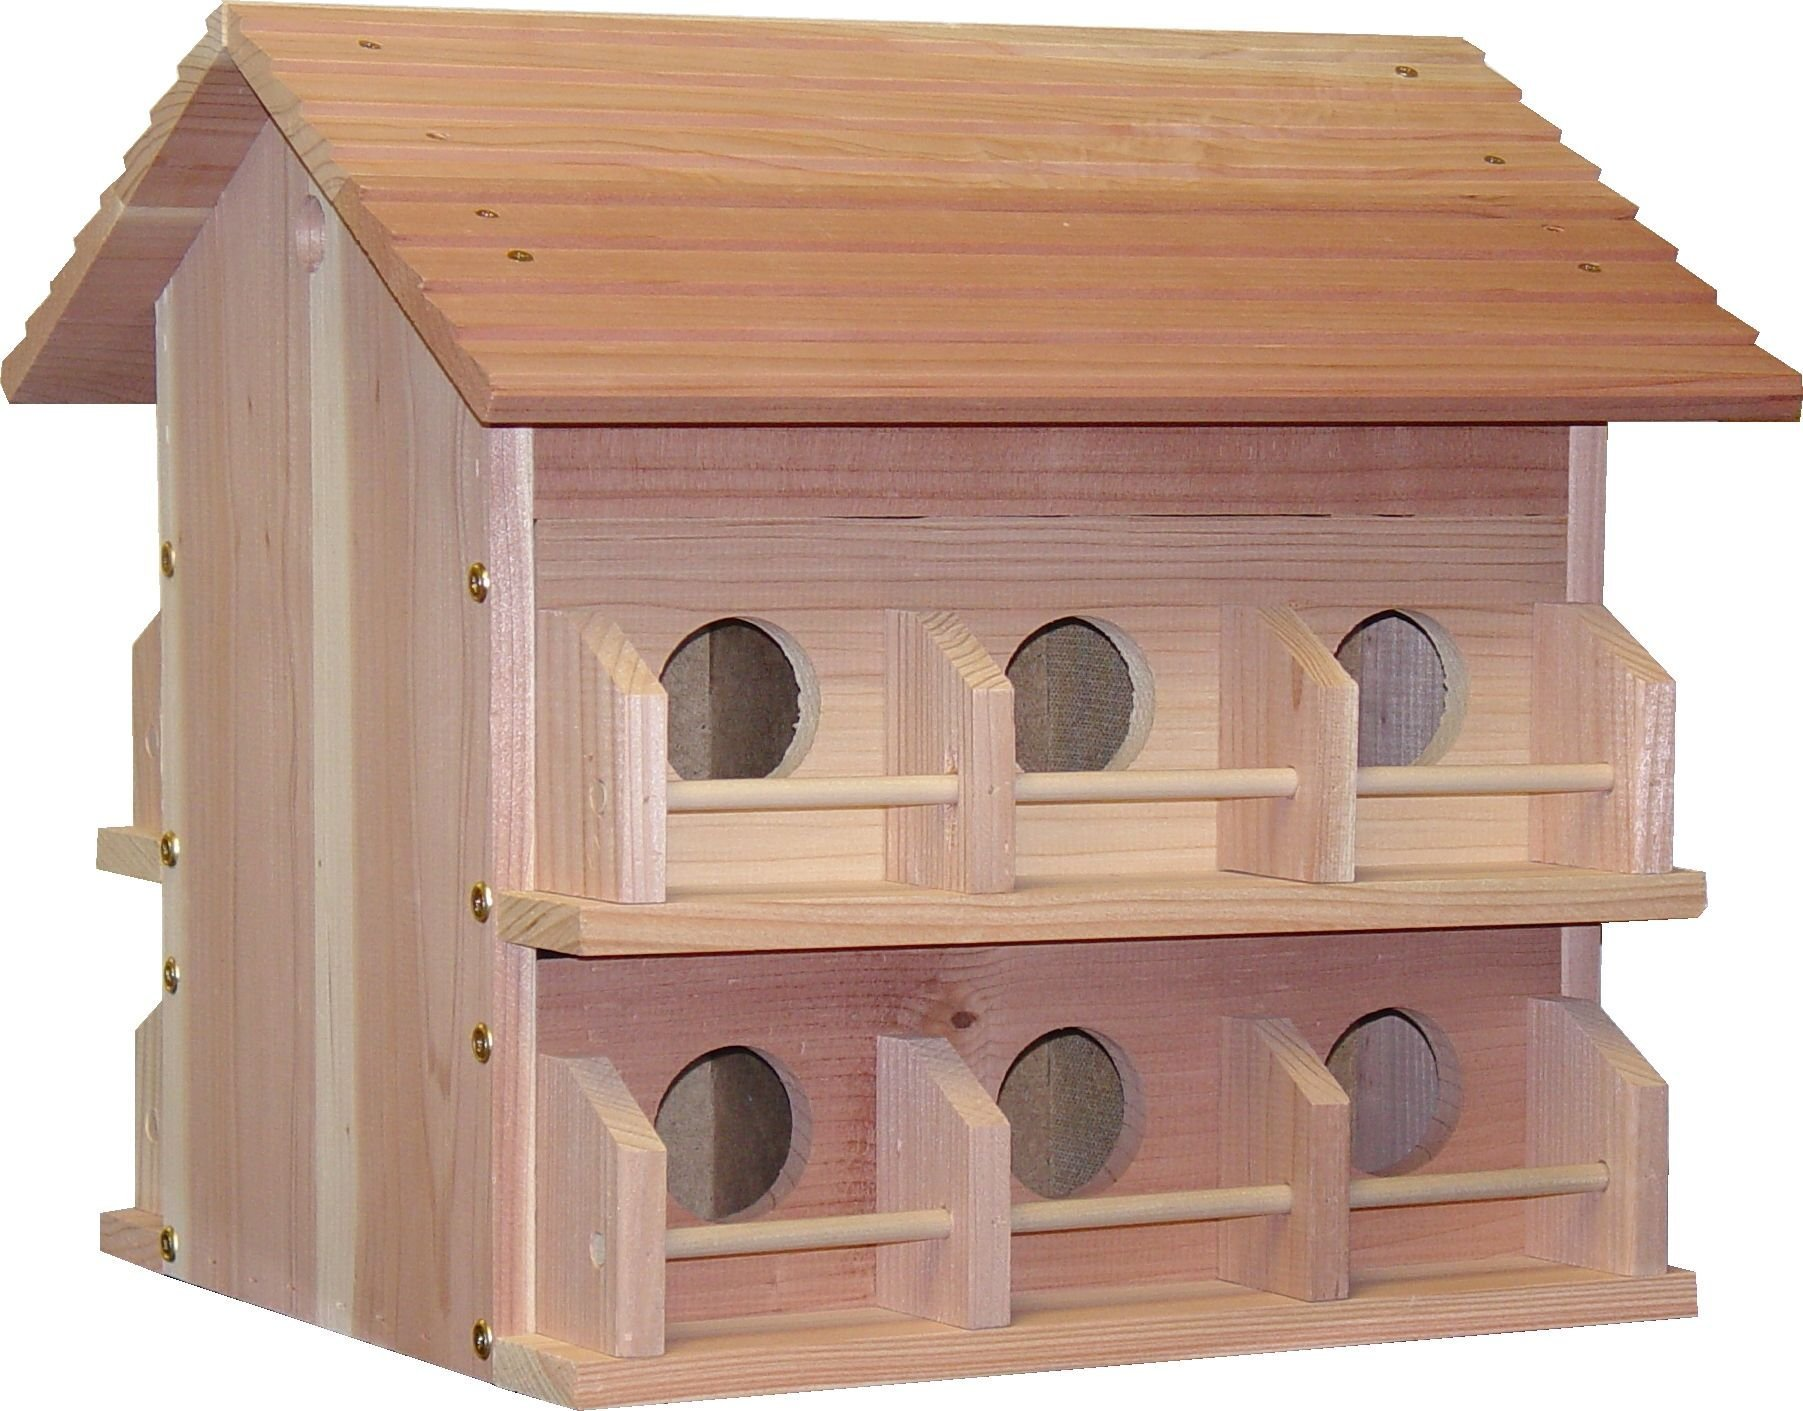 Heath Outdoor Products M-12DP Deluxe Wood Martin House by Heath Outdoor Products